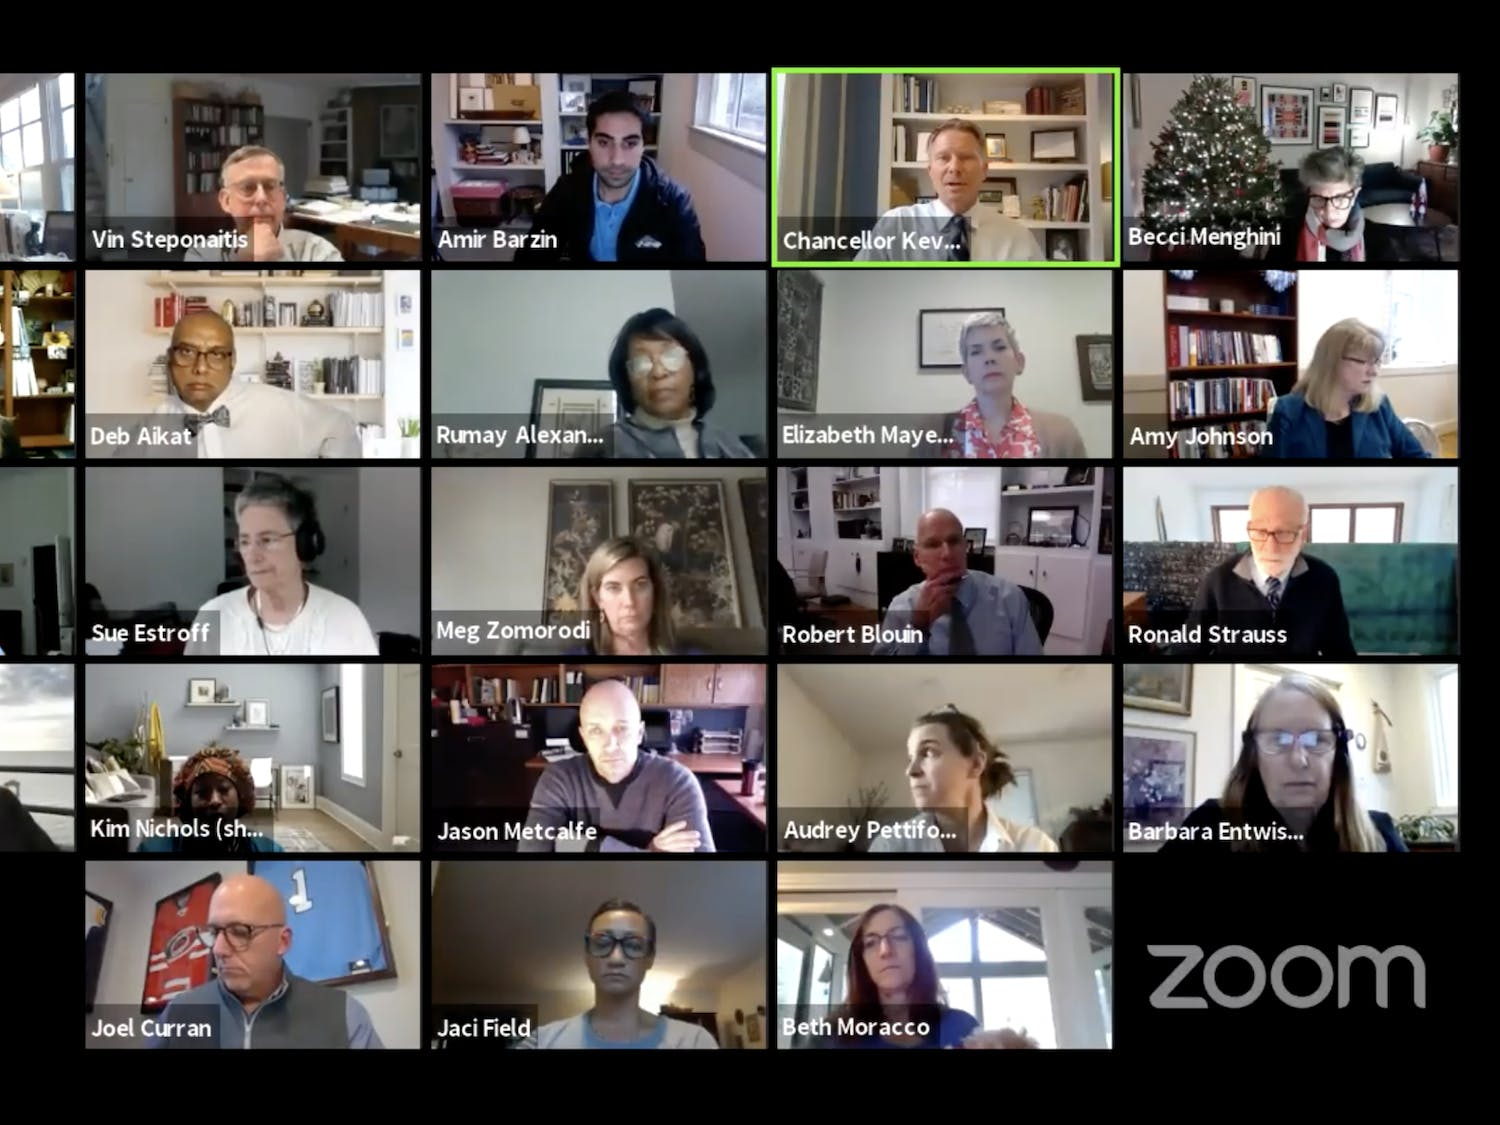 Screenshot from the Faculty Council and Employee Forum meeting on Friday, Dec. 4, 2020.